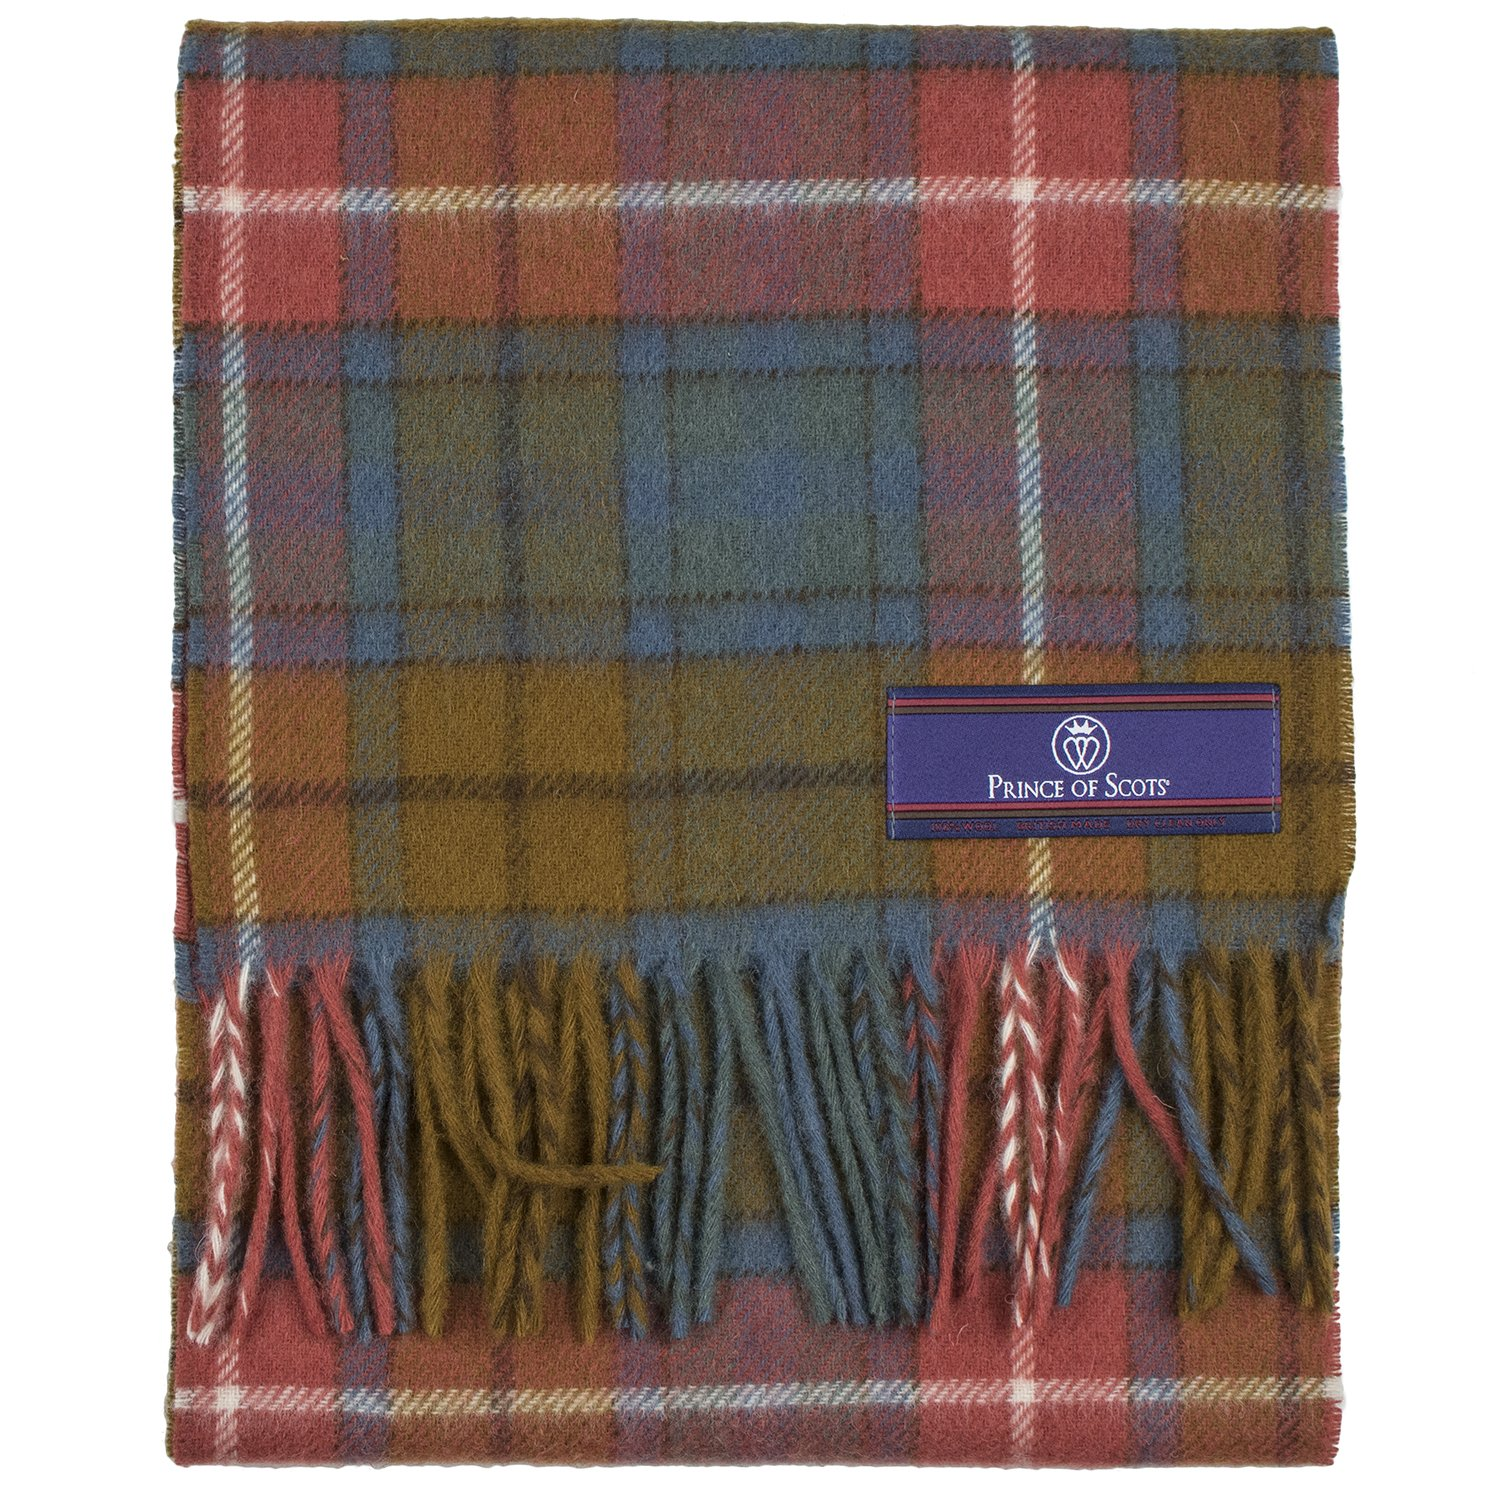 Prince of Scots Pure Merino Lambswool Tartan Scarf Antique Buchanan,Antique,One Size